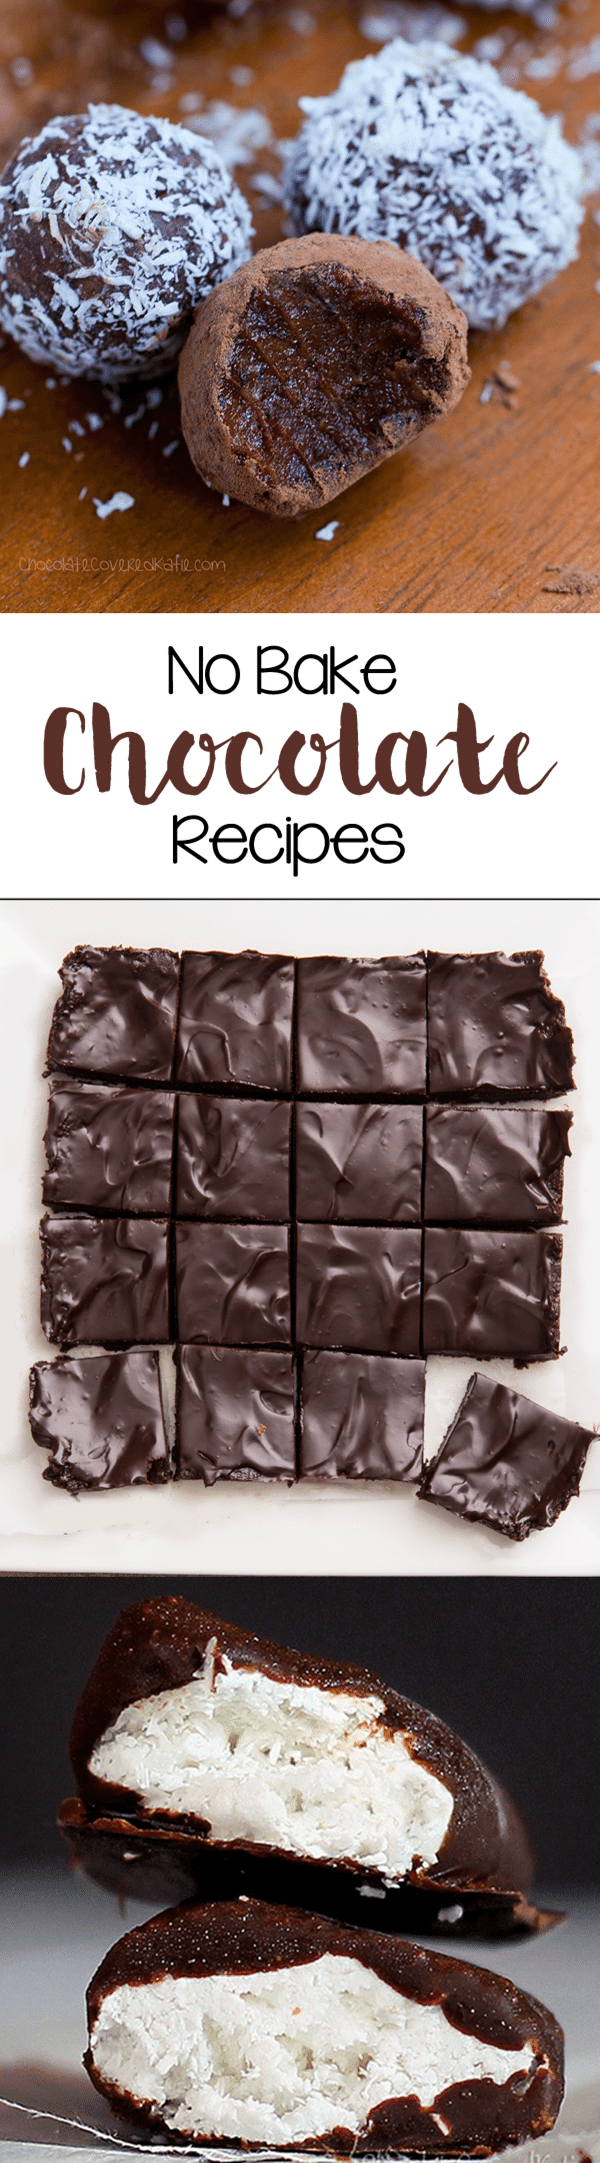 "NO BAKE RECIPES - 50 easy chocolate ""no bake"" treats, including no bake cookies ▪ no bake bars ▪ no bake desserts...from @choccoveredkt - https://chocolatecoveredkatie.com/2016/02/11/no-bake-chocolate-recipes-healthy-easy/"